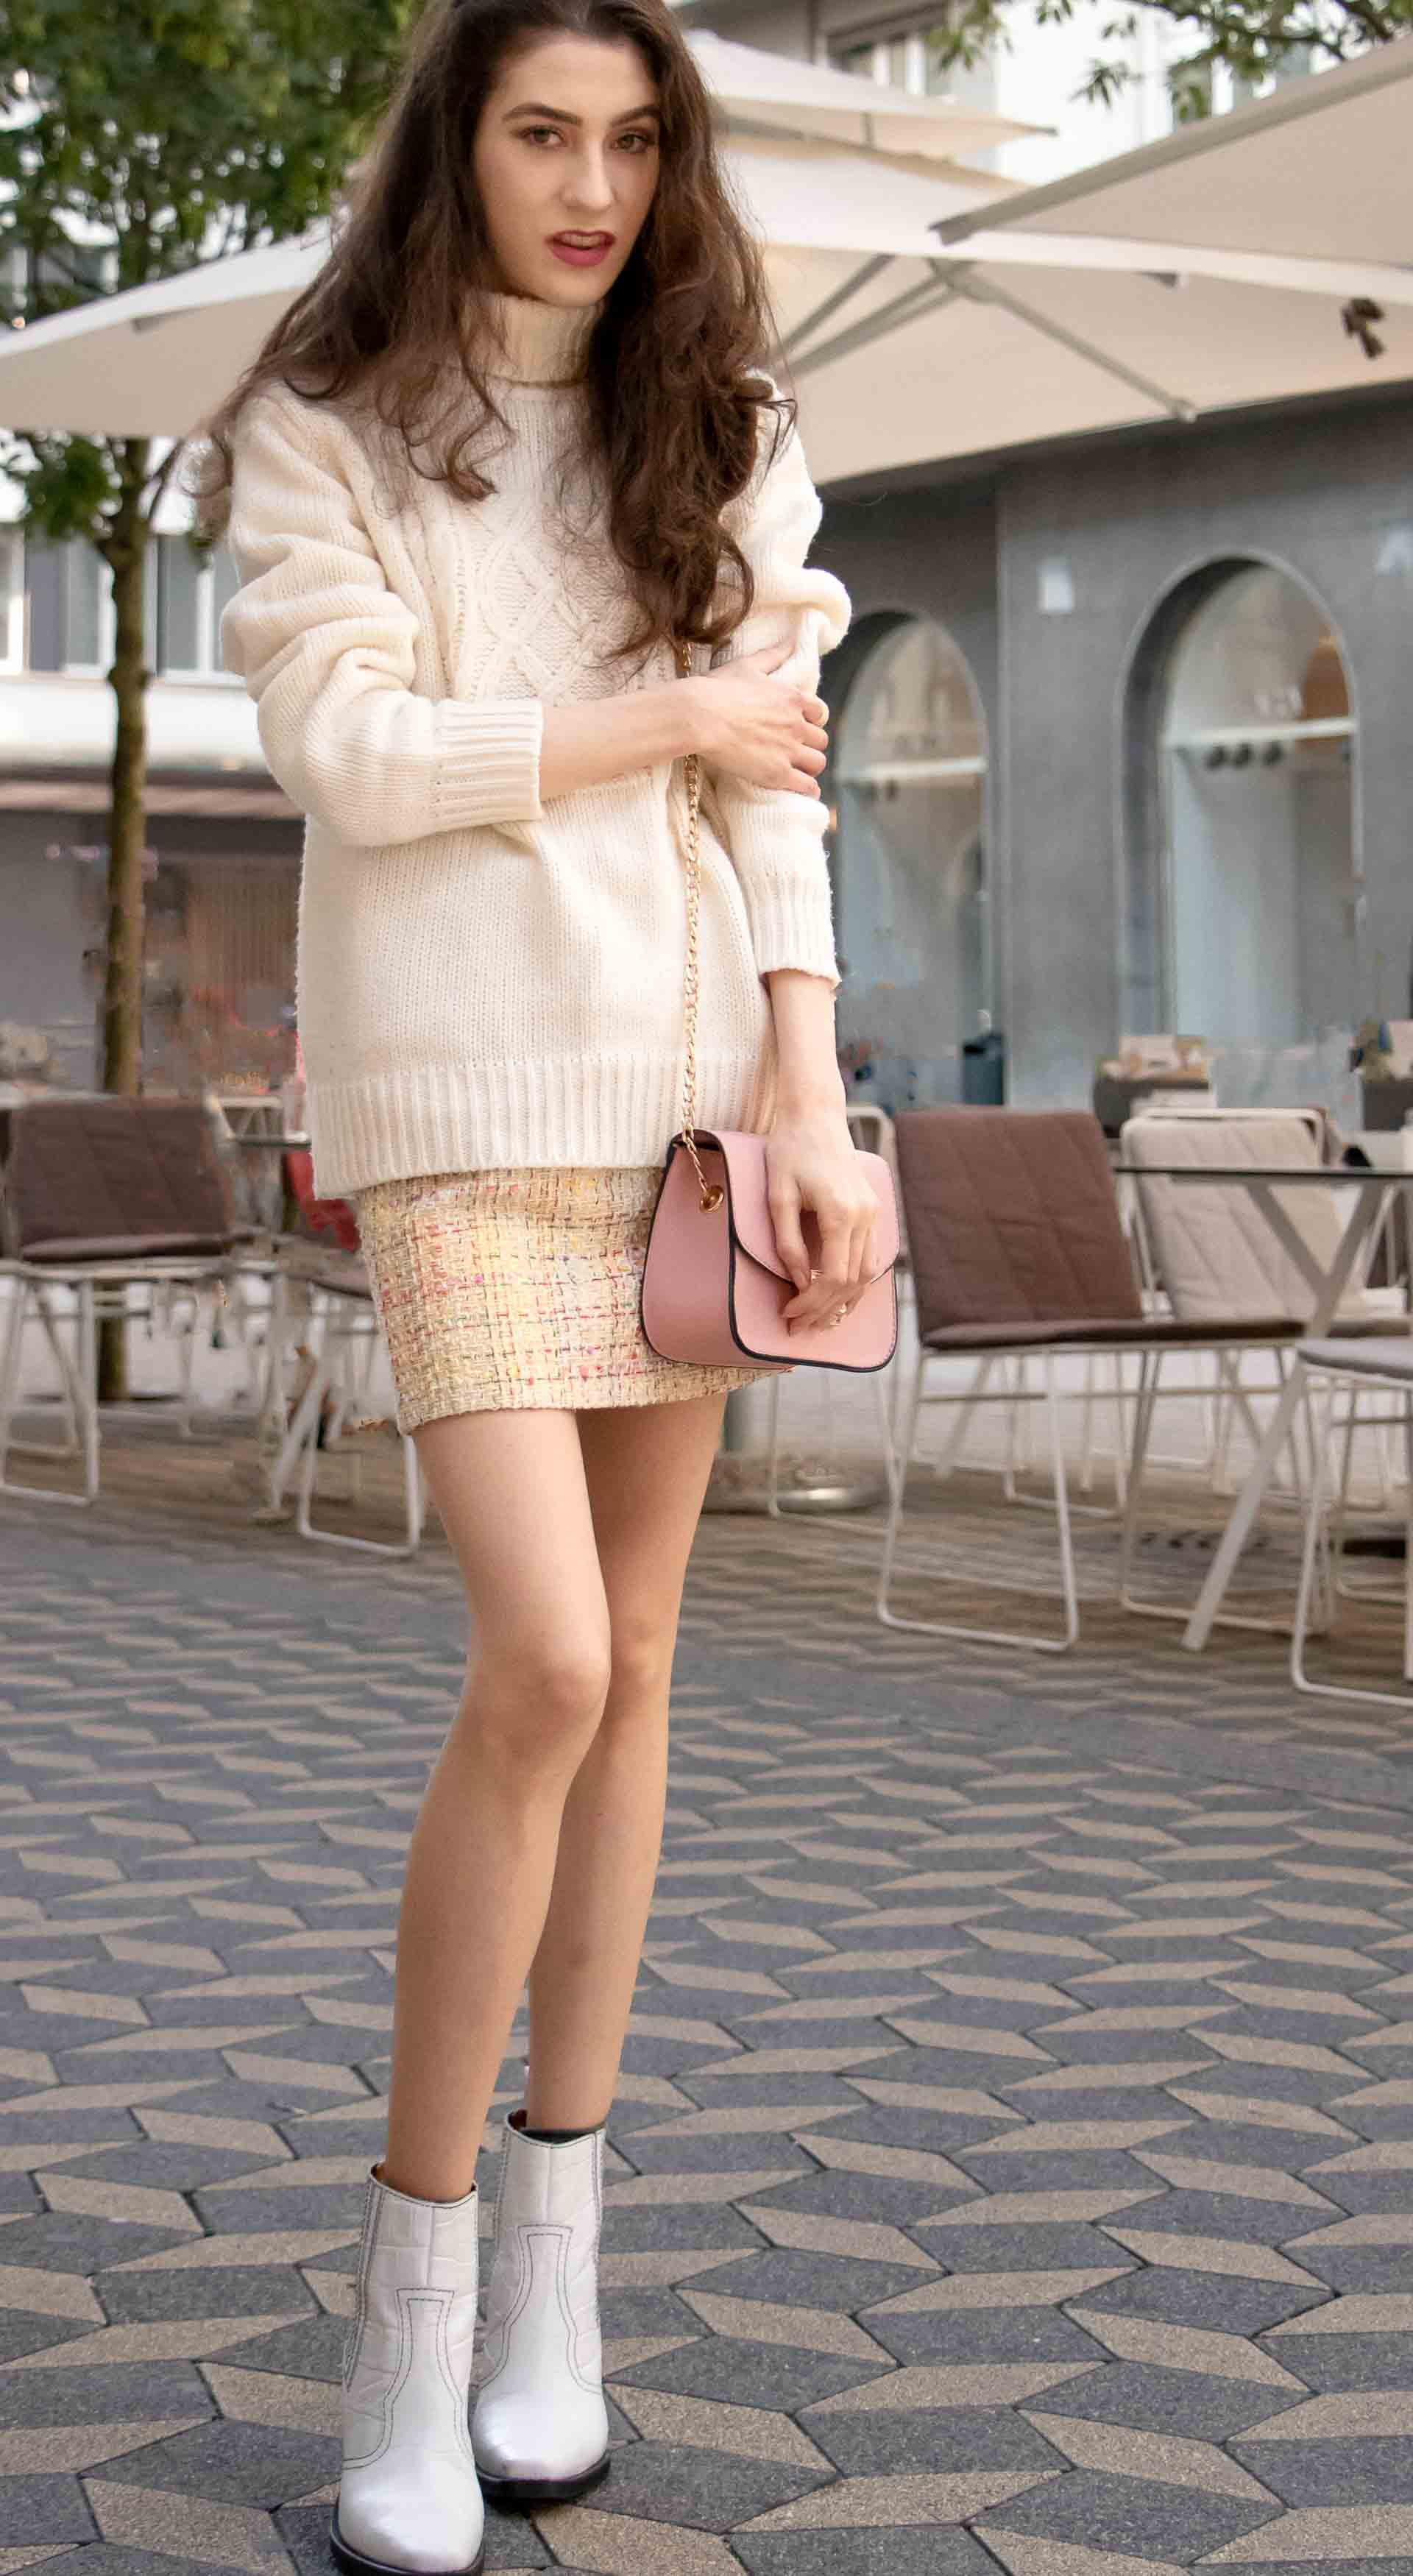 Beautiful Slovenian Fashion Blogger Veronika Lipar of Brunette from Wall wearing white Ganni Western boots, yellow tweed skirt, white turtleneck sweater, chain strap shoulder bag for autumn brunch